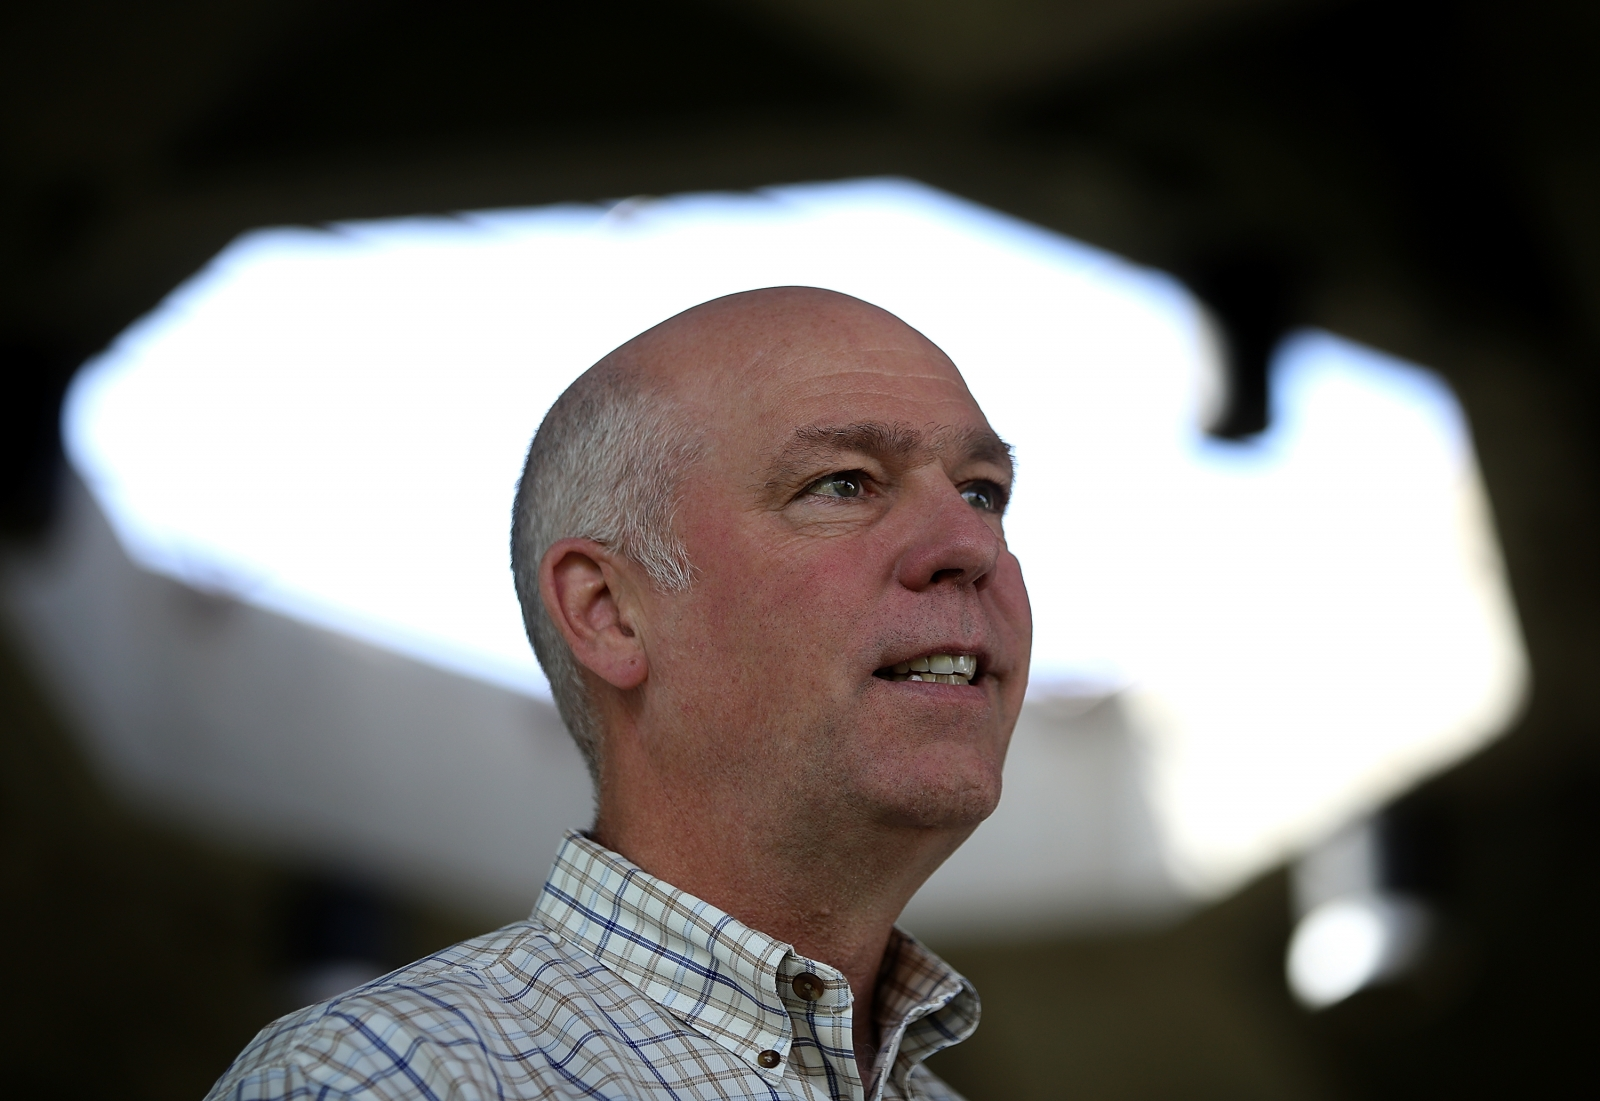 Republican congressional candidate Greg Gianforte